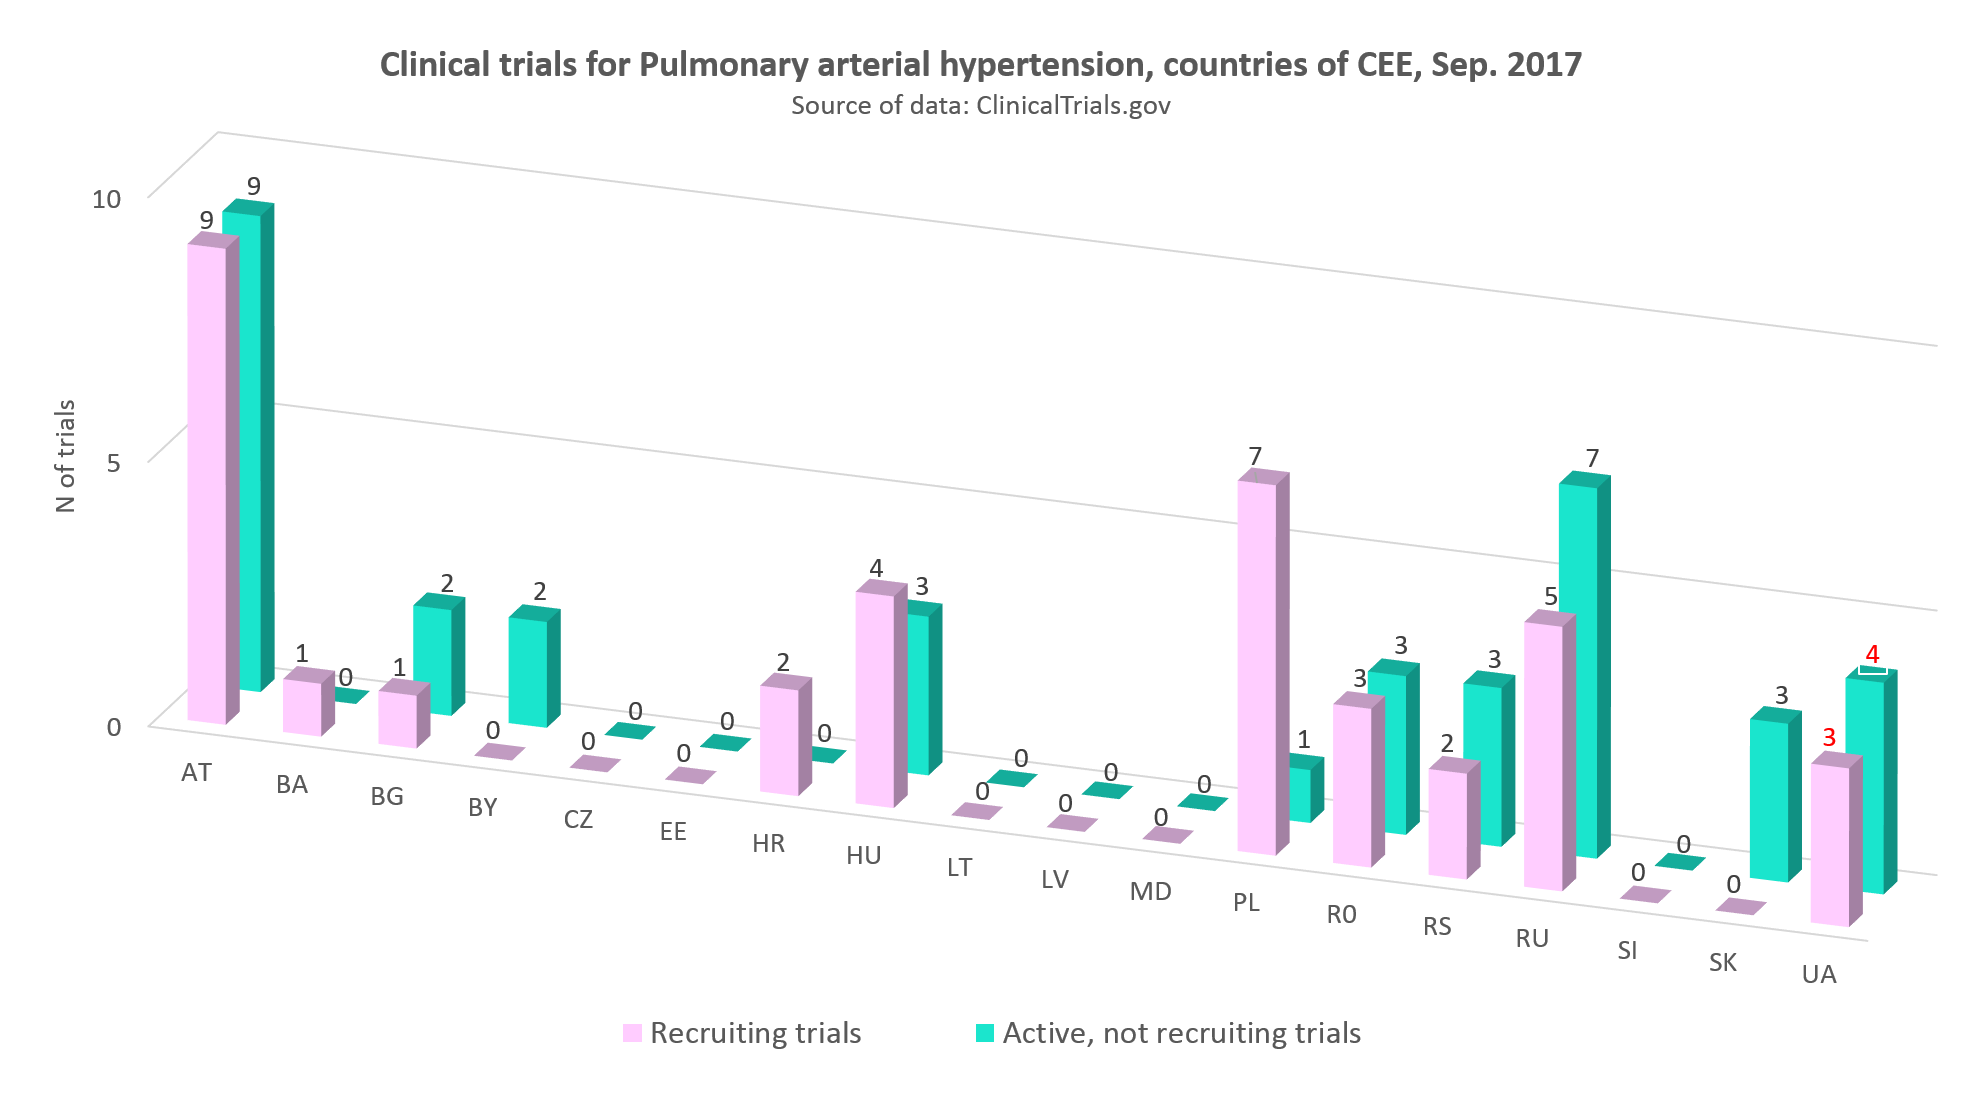 Clinical trials for pulmonary arterial hypertension in countries of CEE, September 2017